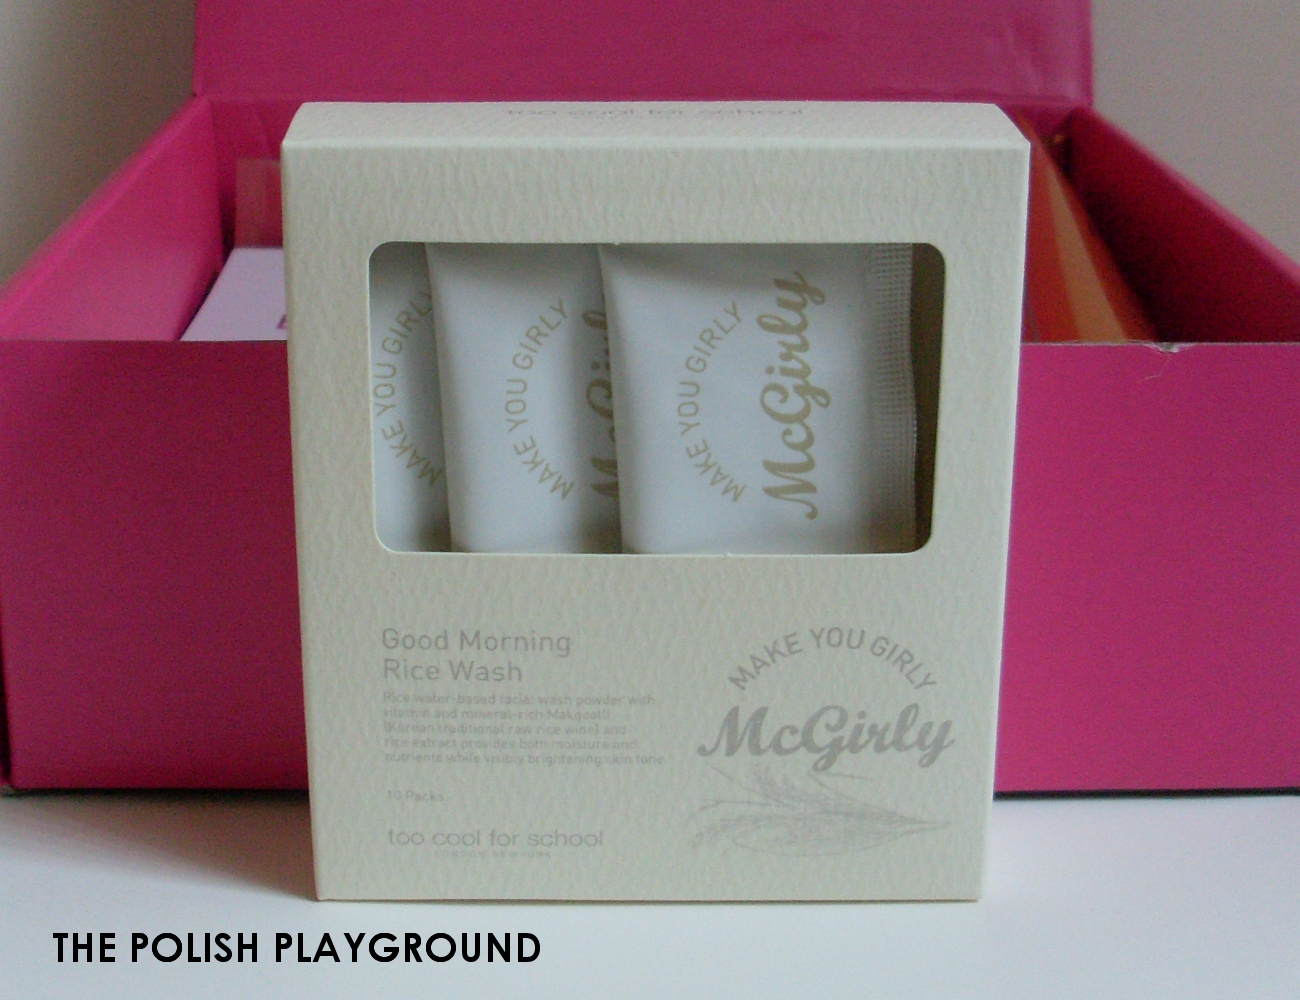 Memebox Luckybox #11 Unboxing - Too Cool For School Mcgirly Good Morning Rice Wash Set